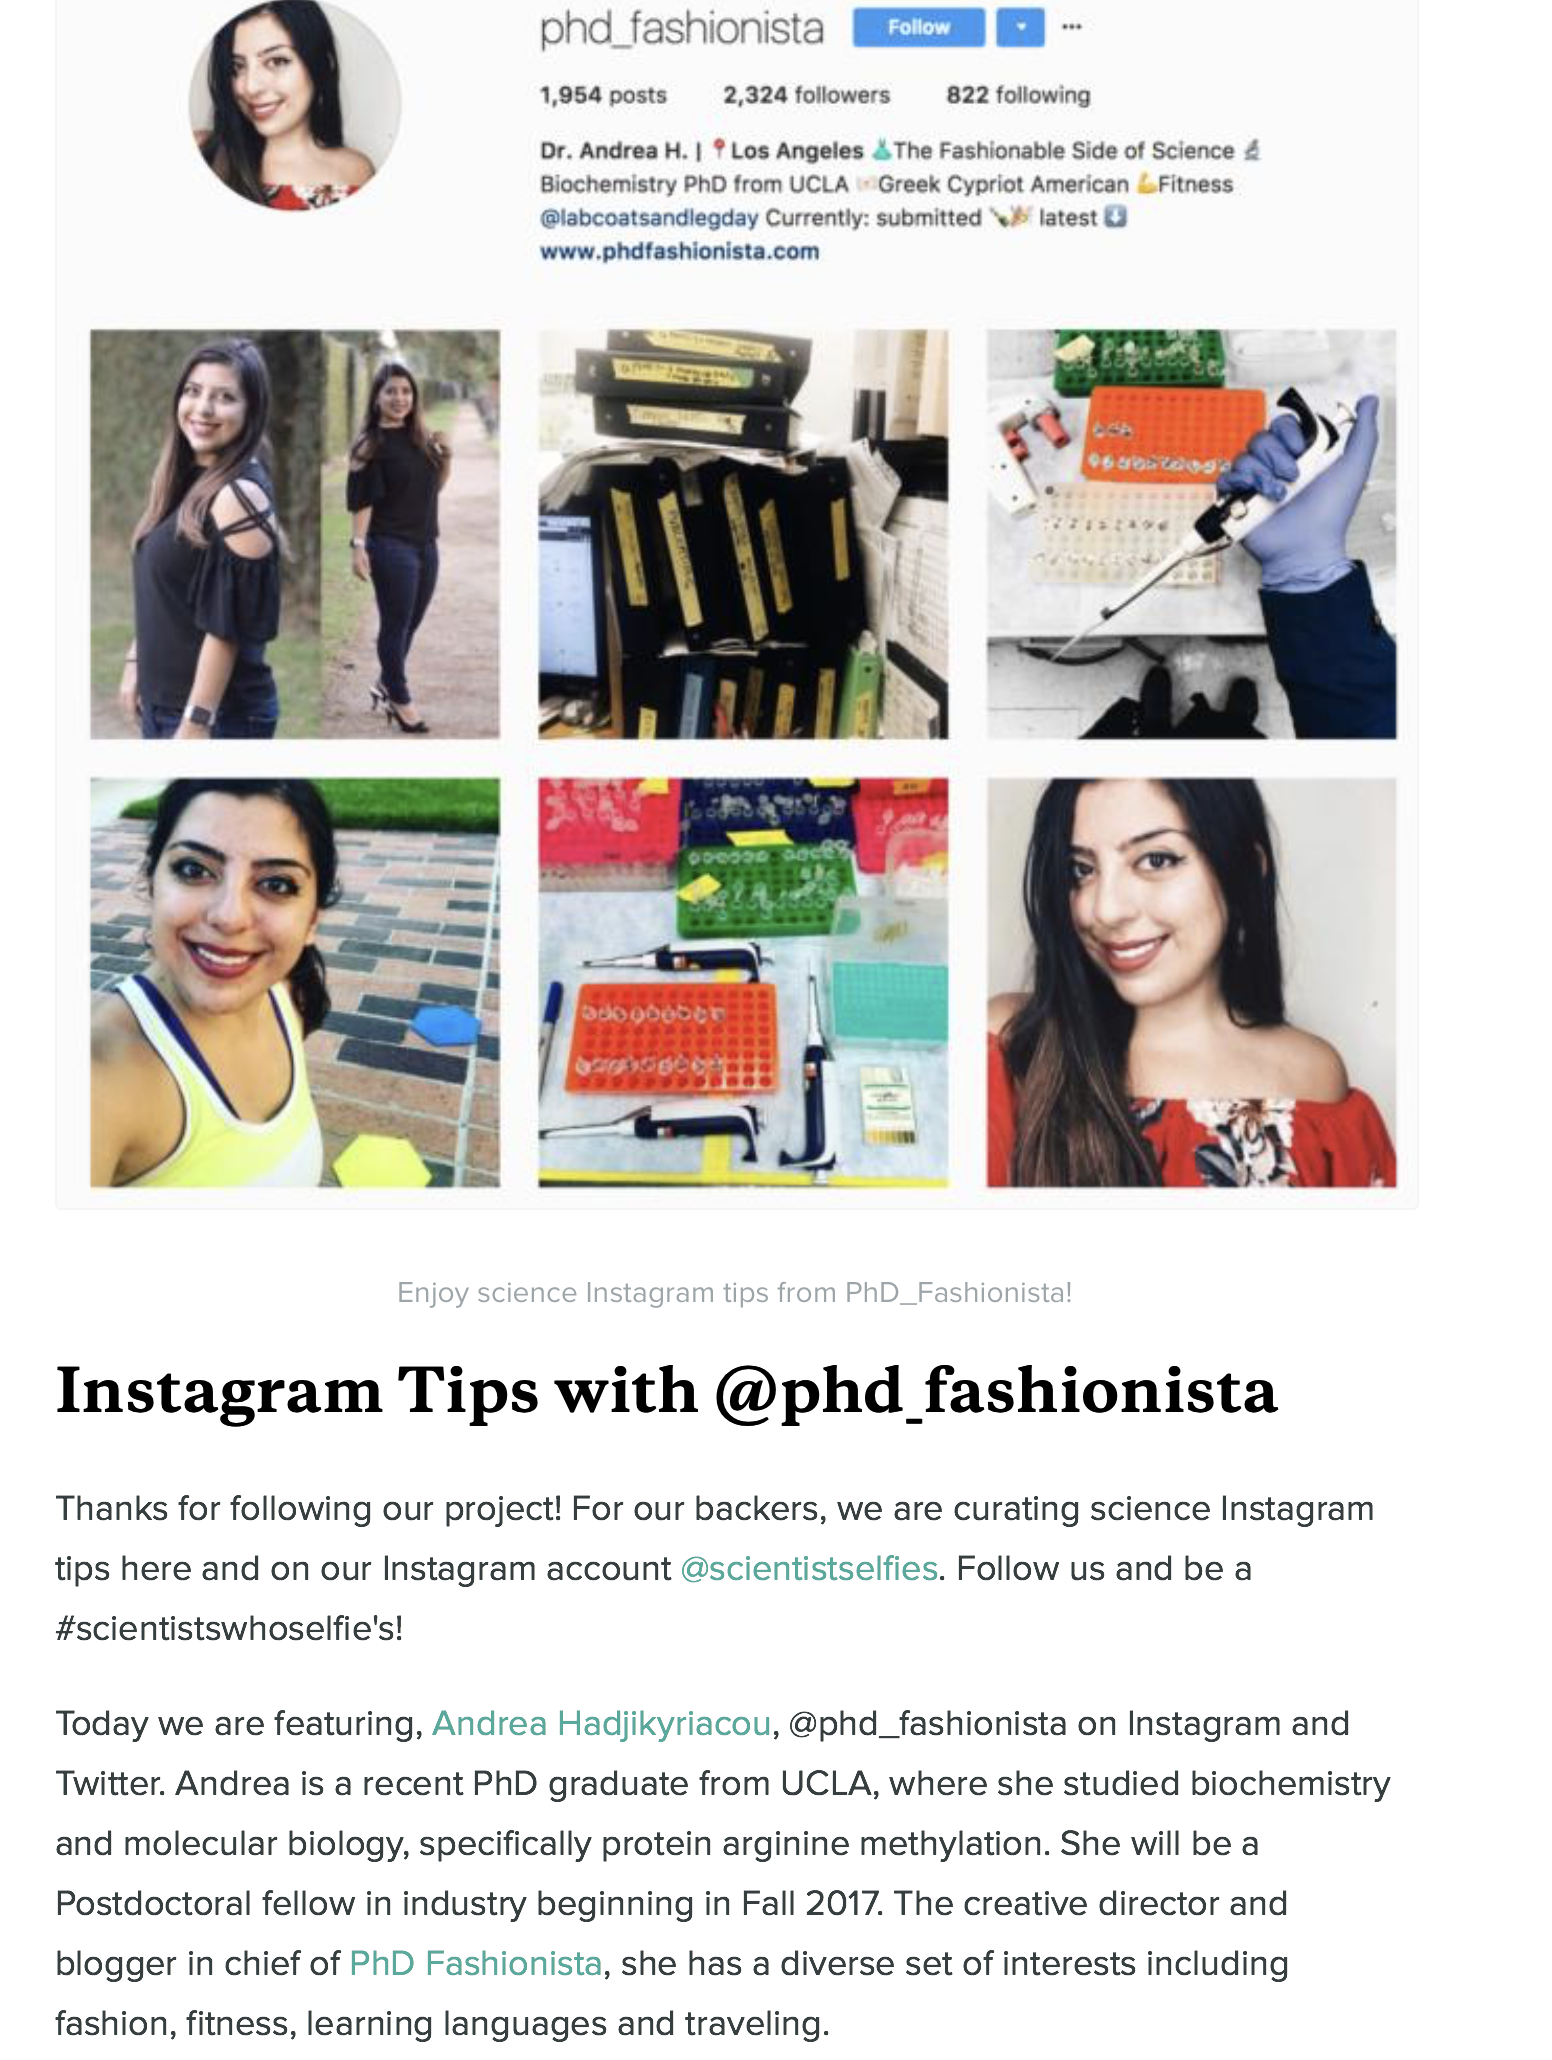 Scientist Selfies Instagram Tips with PhD Fashionista